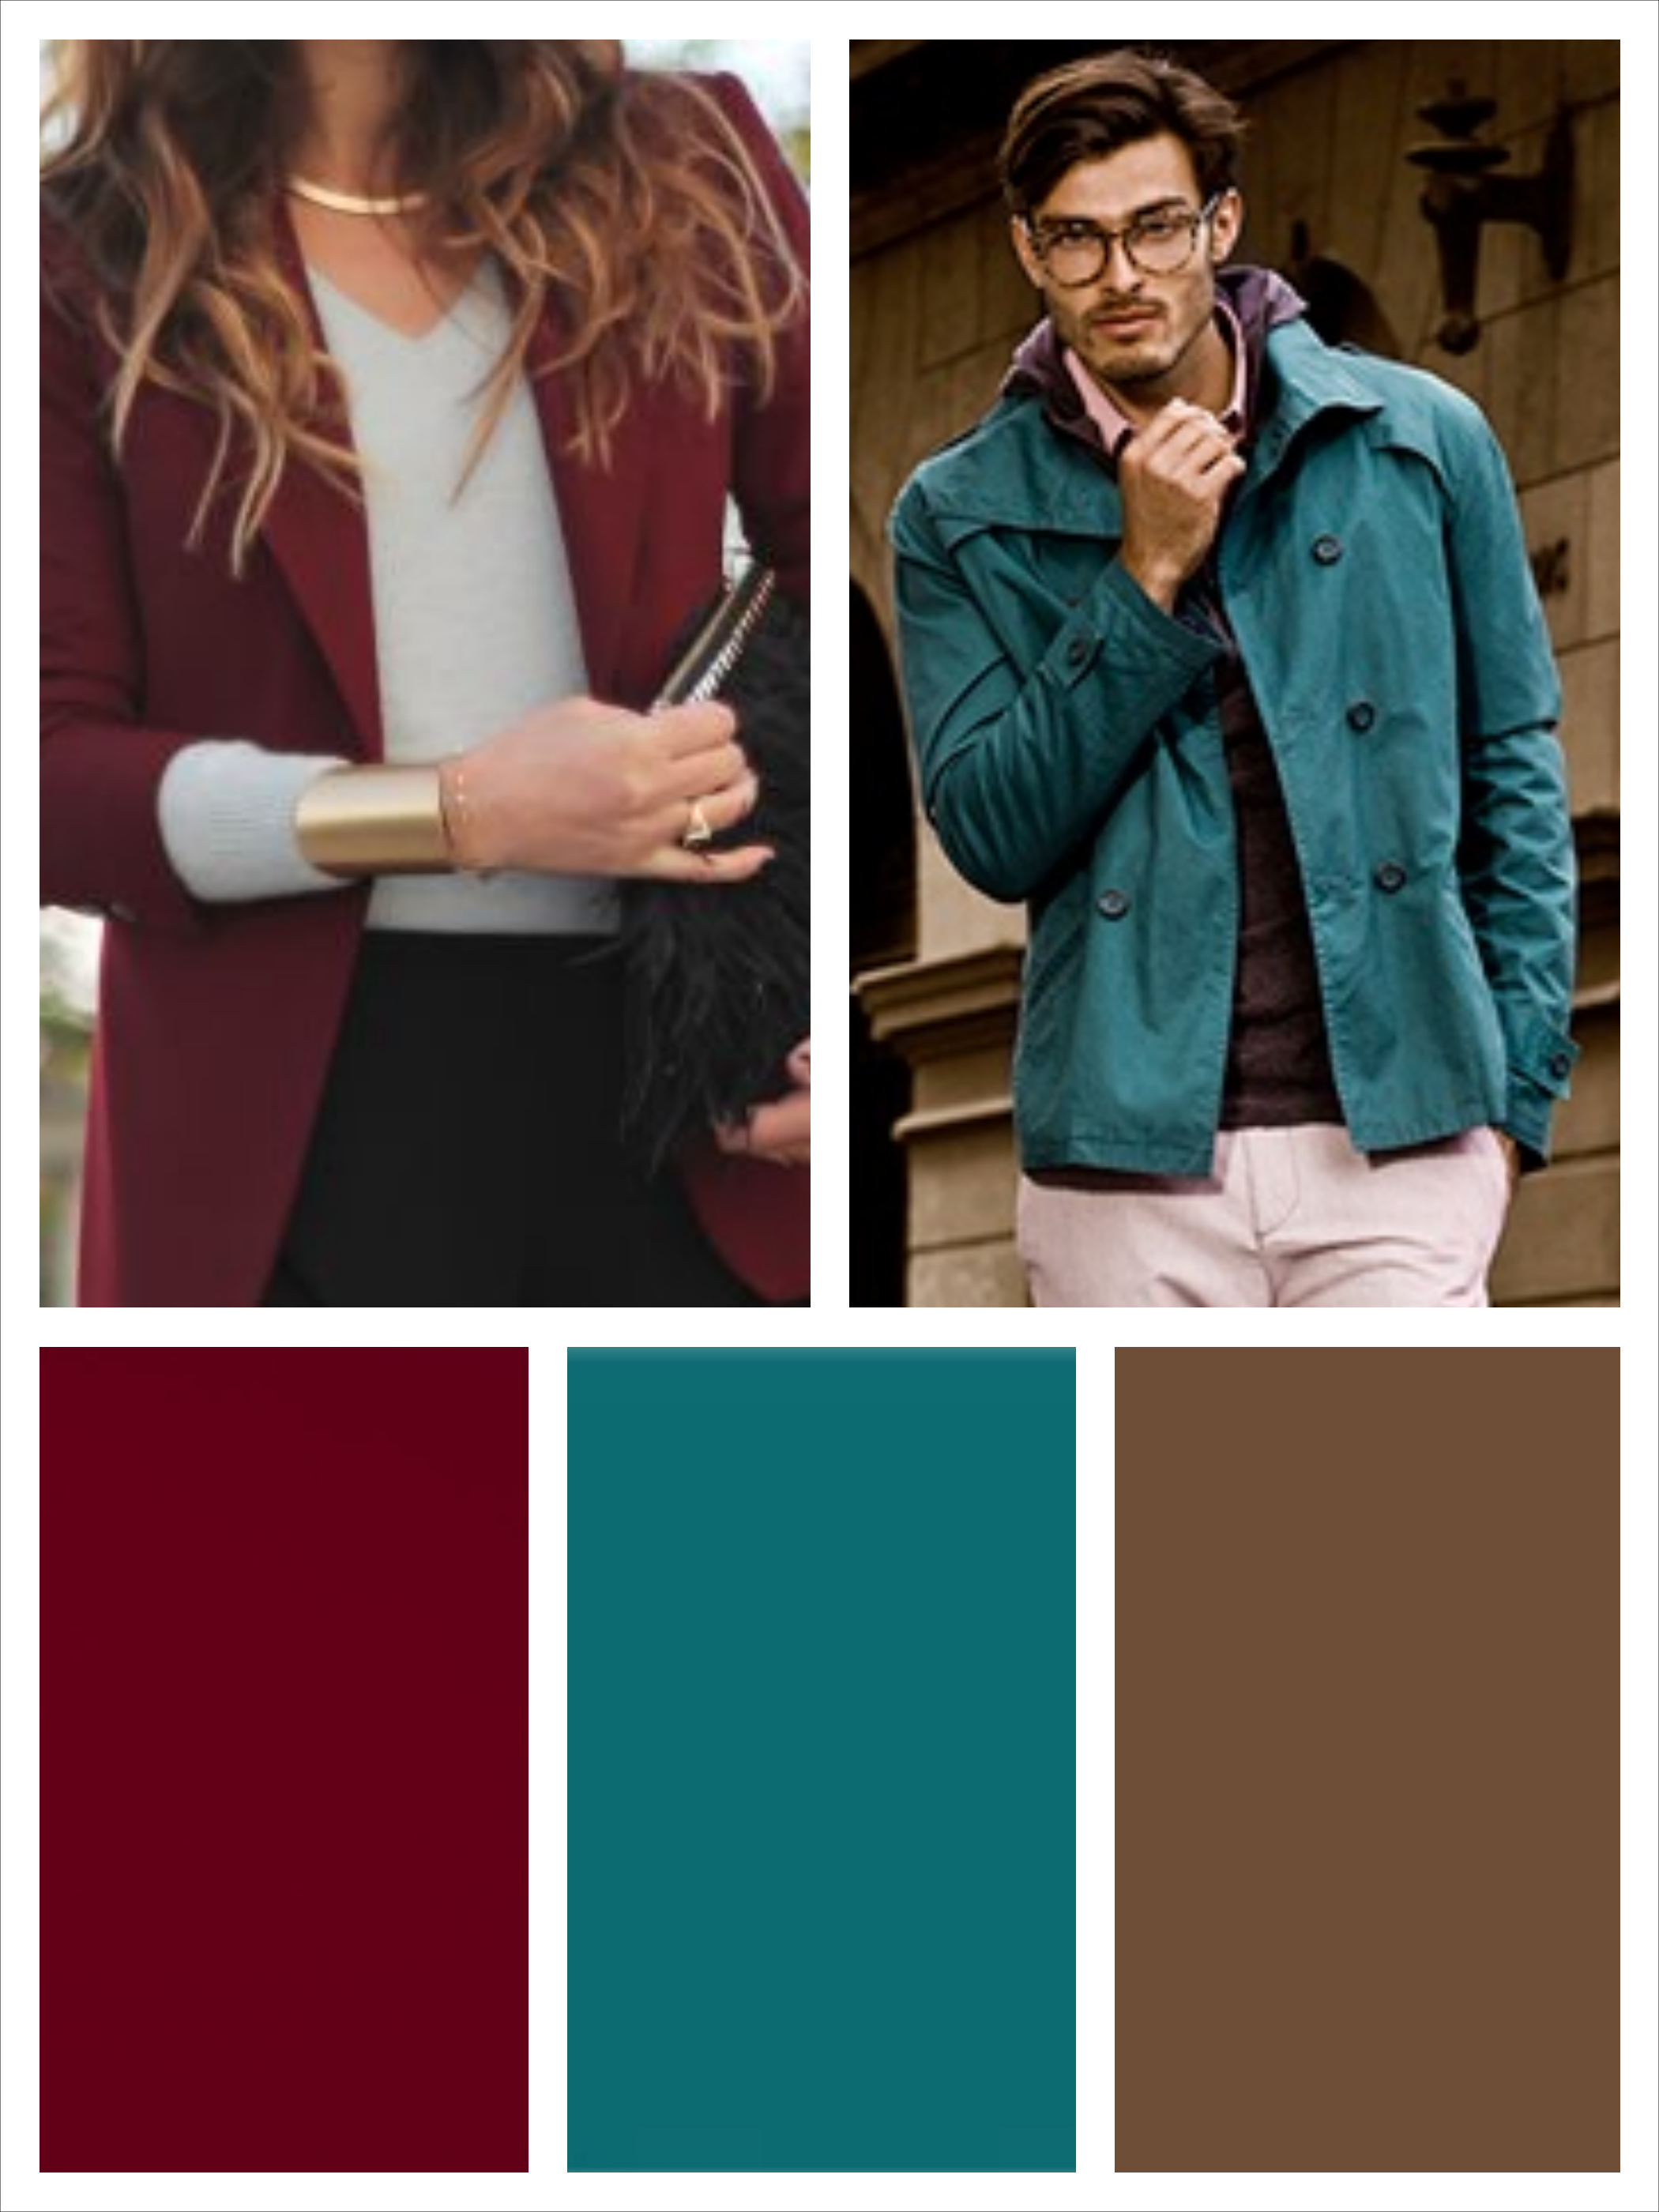 Fall & Winter Color Trends for 2013 - Bringing beauty to life.